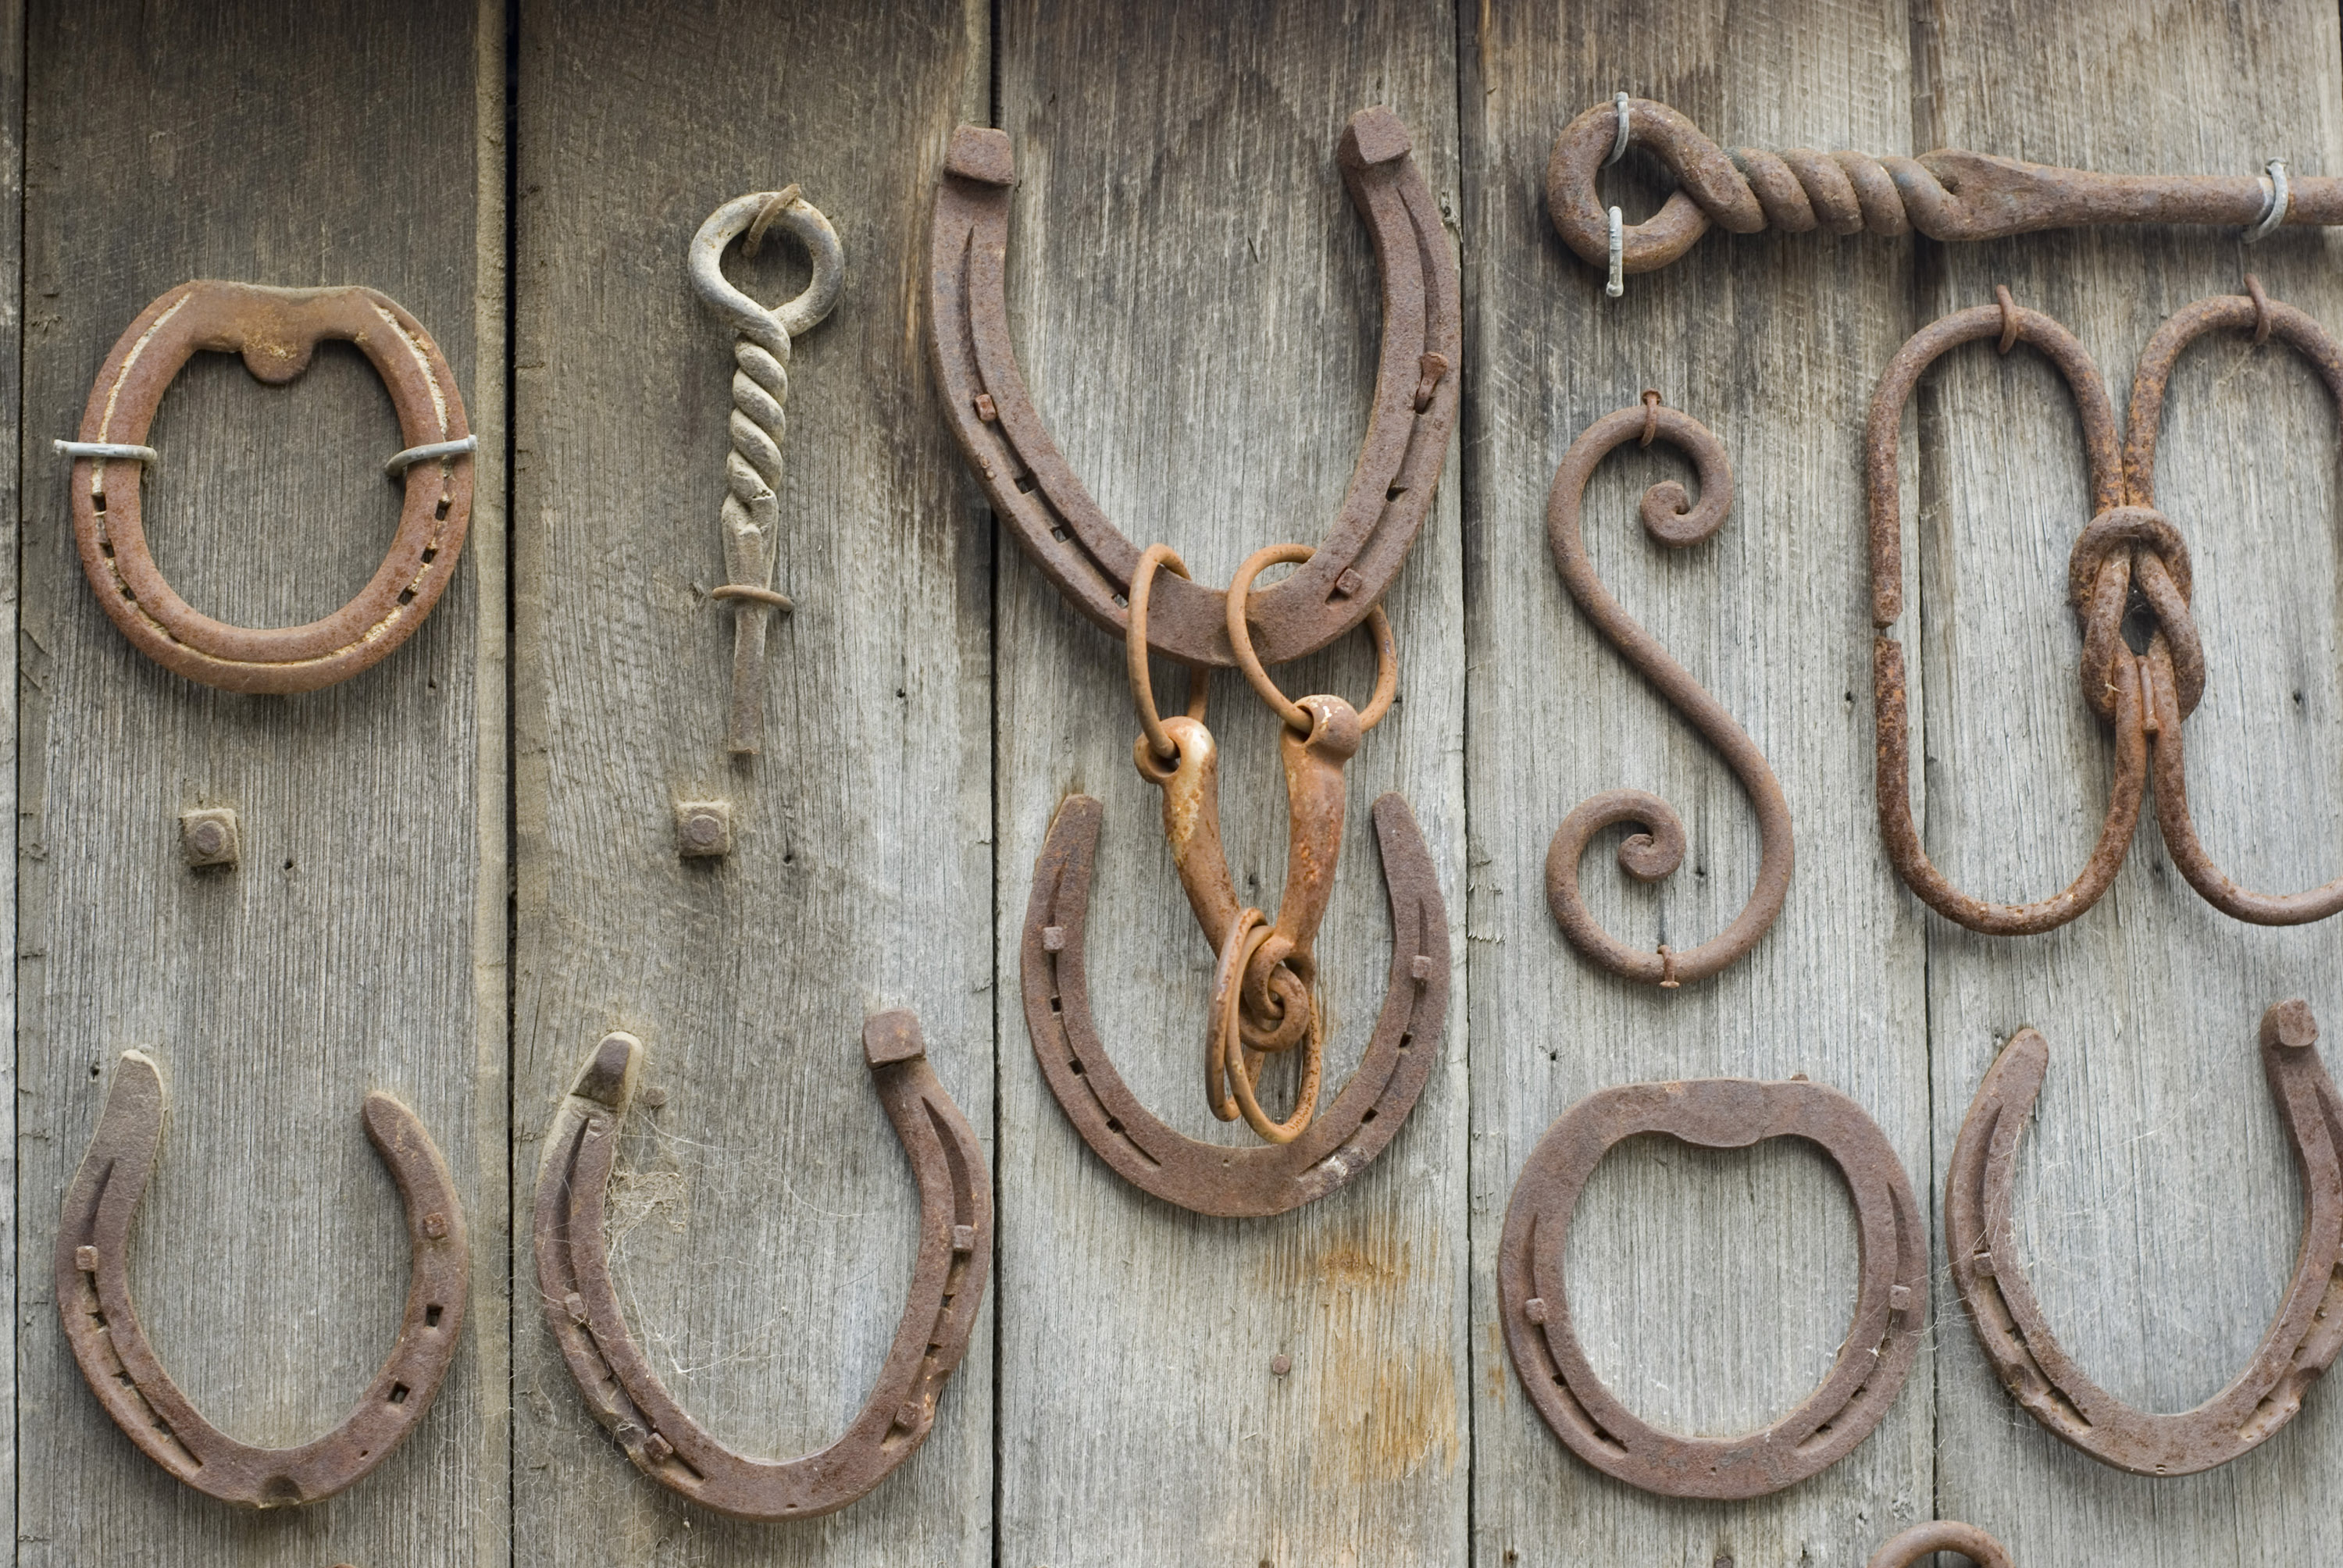 Horseshoes 3396 stockarch free stock photos for Where to buy used horseshoes